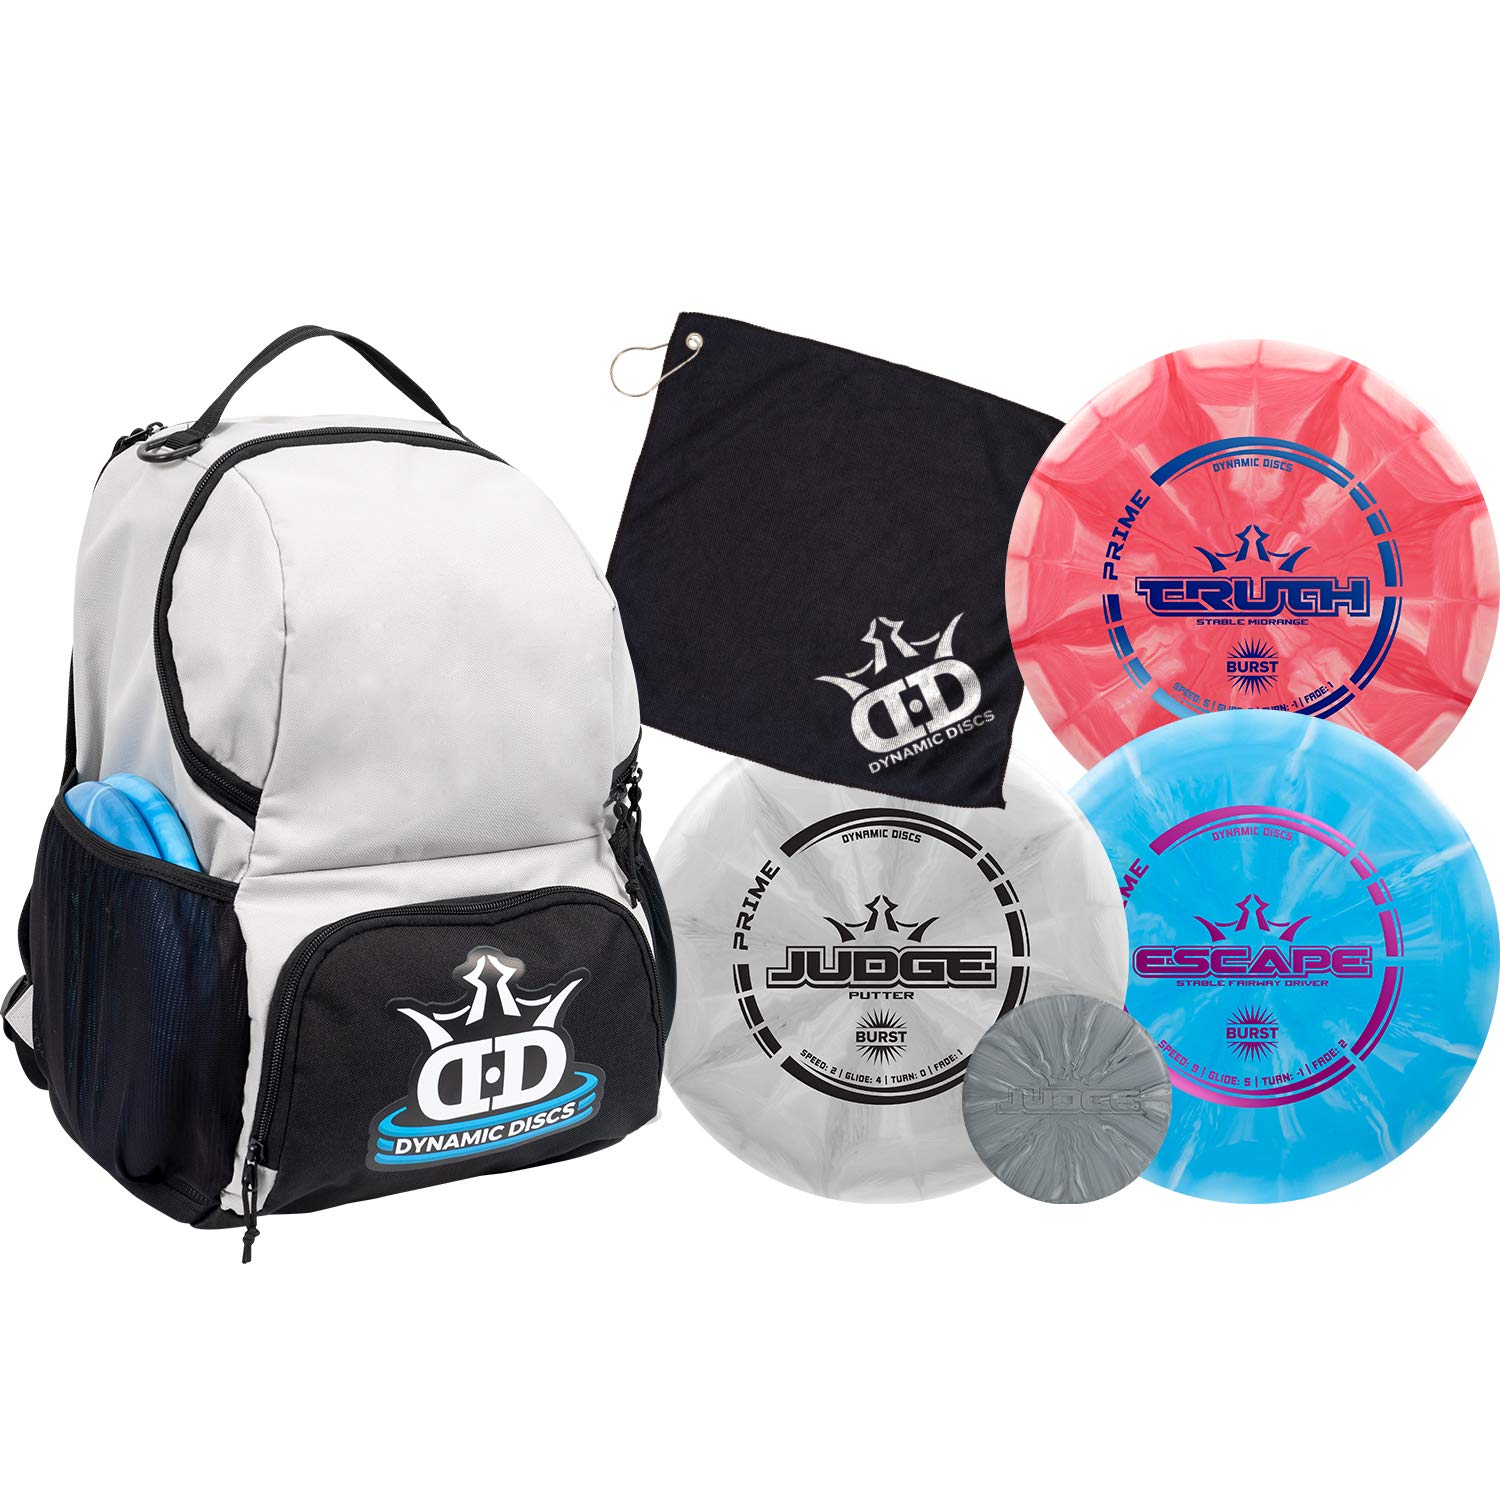 Dynamic Discs Disc Golf Starter Set | Gray/Black Cadet Disc Golf Bag Included | 17+ Disc Capacity | Prime Burst Disc Golf Frisbee Set Included | Putter, Midrange, Driver | 170g plus | Colors will vary by D·D DYNAMIC DISCS